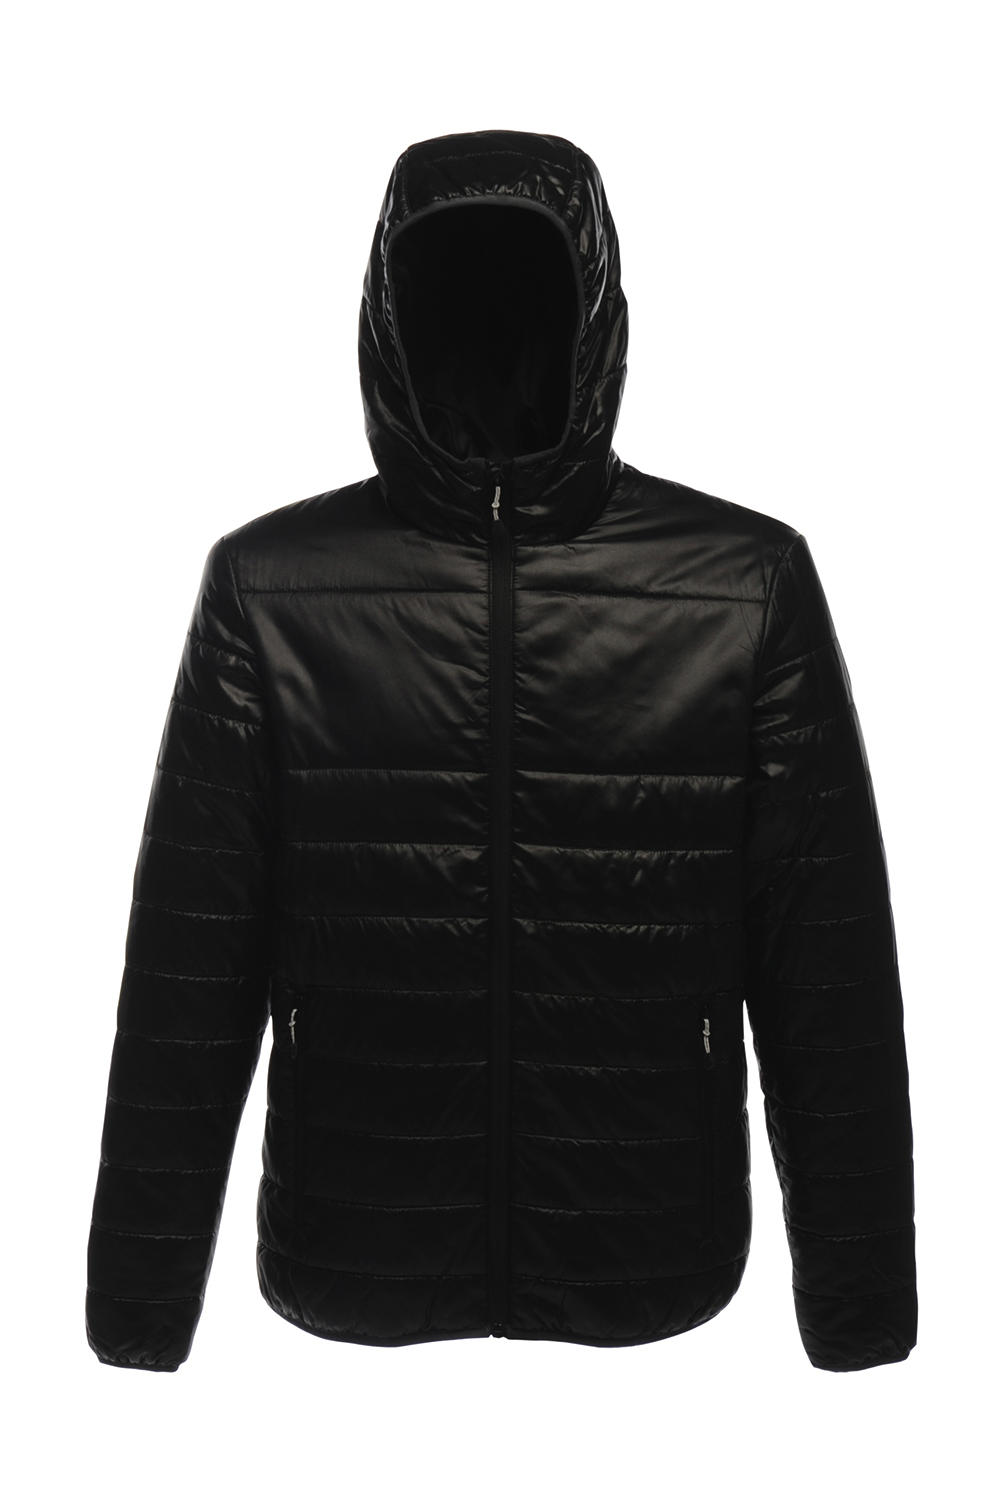 Acadia Thermal Jacket